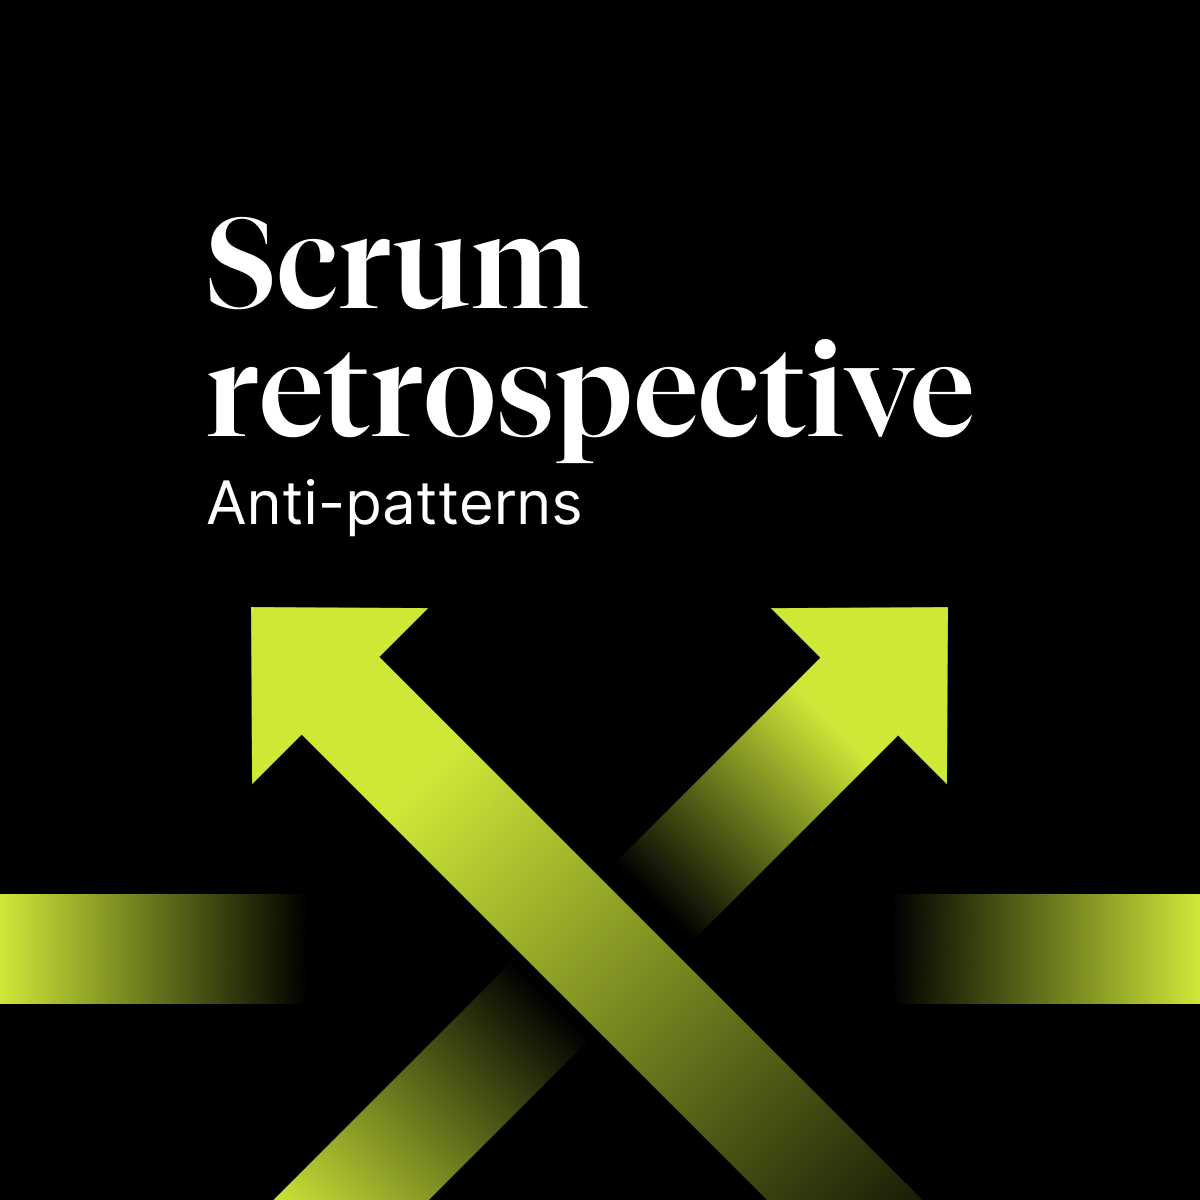 Scrum retrospective: anti-pattern or how not to do it